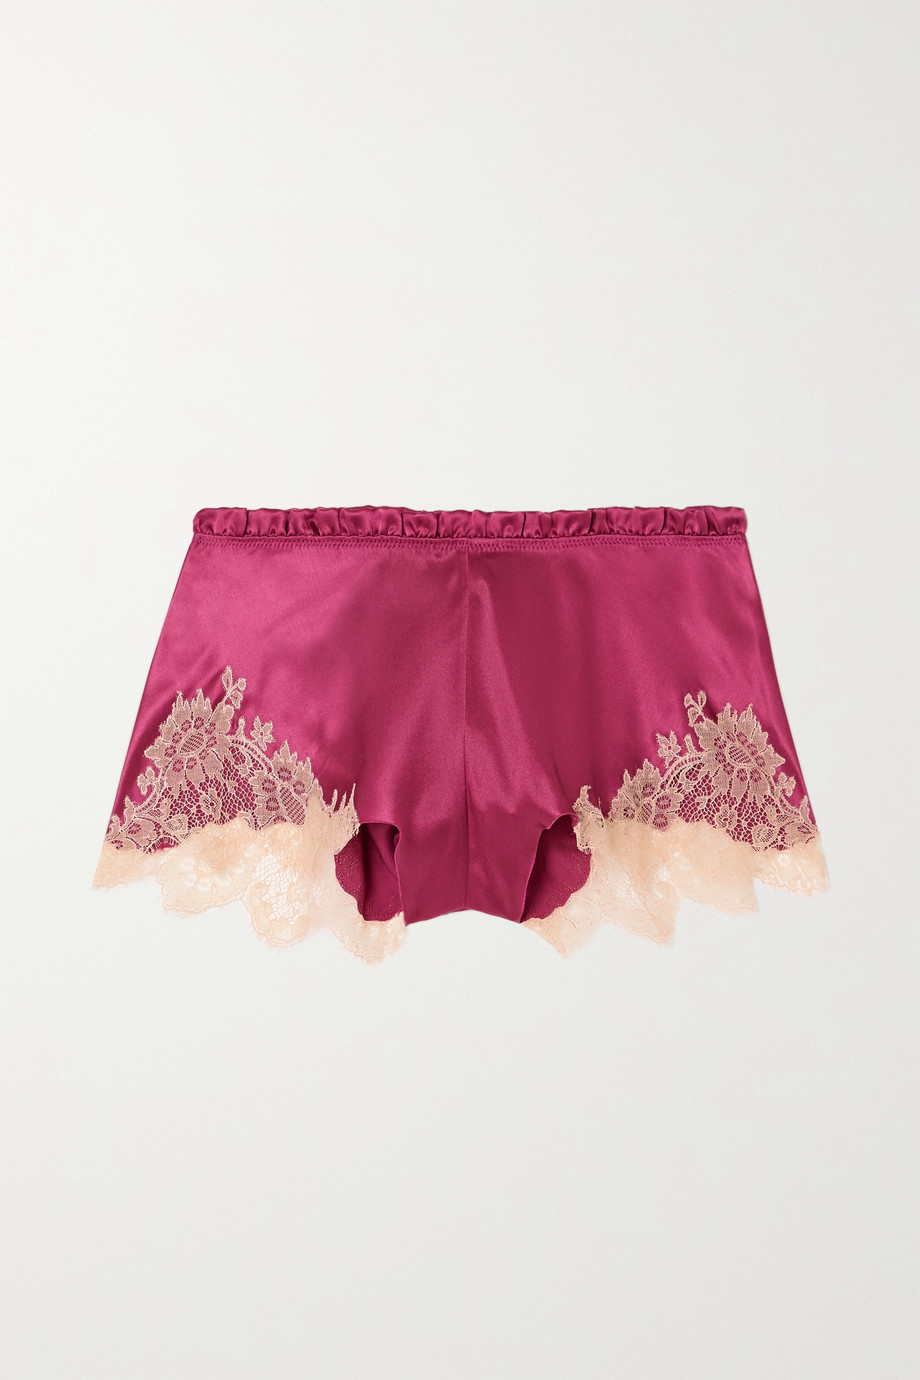 CARINE GILSON Flottant Chantilly lace-trimmed silk-satin shorts